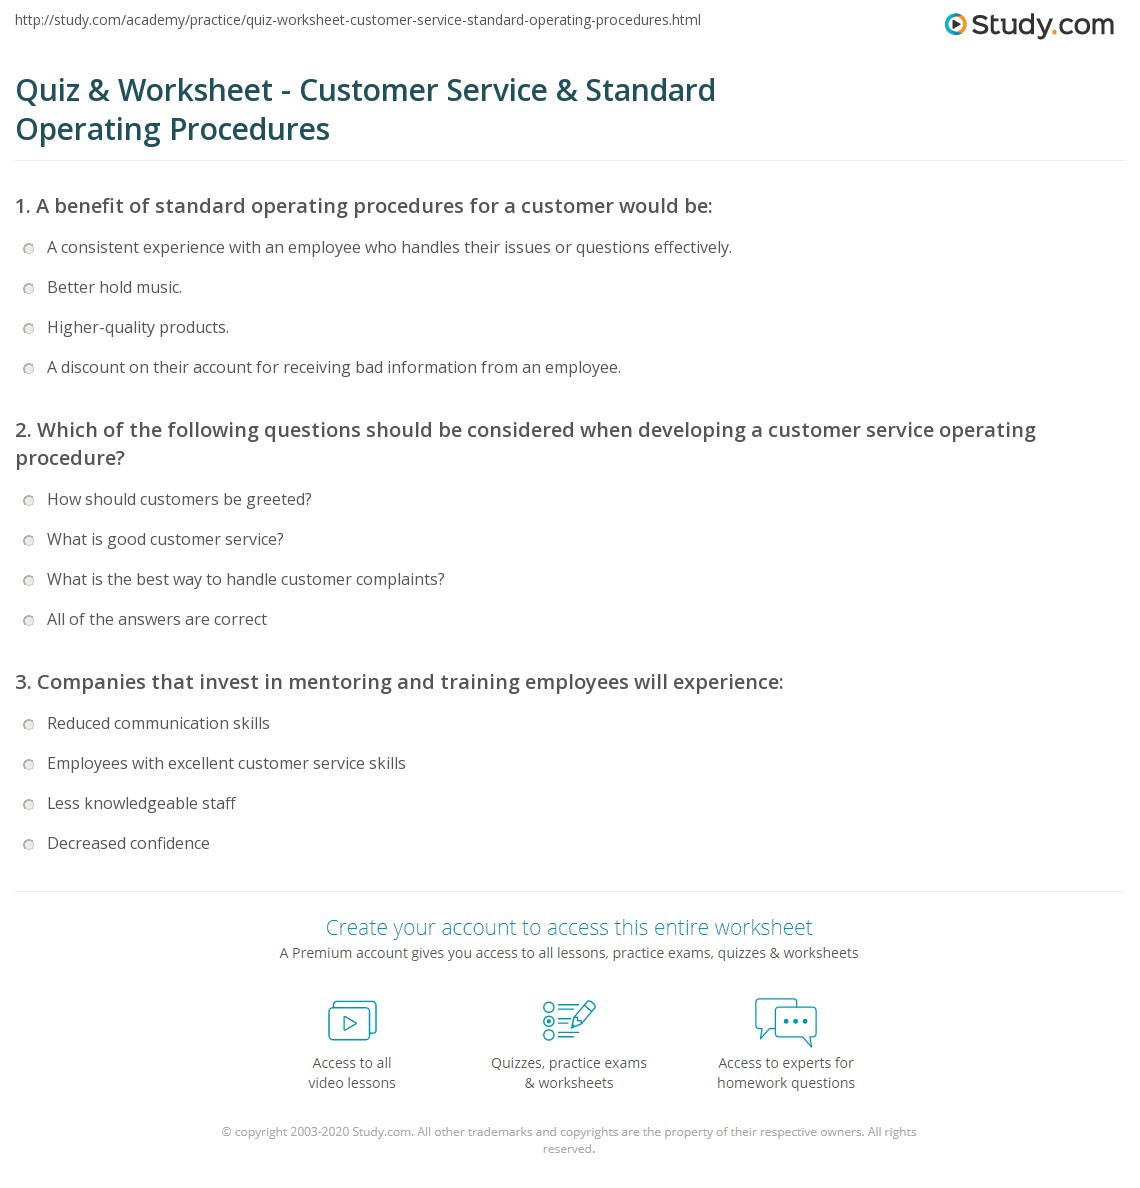 quiz worksheet customer service standard operating questions to consider when developing a customer service operating procedure include